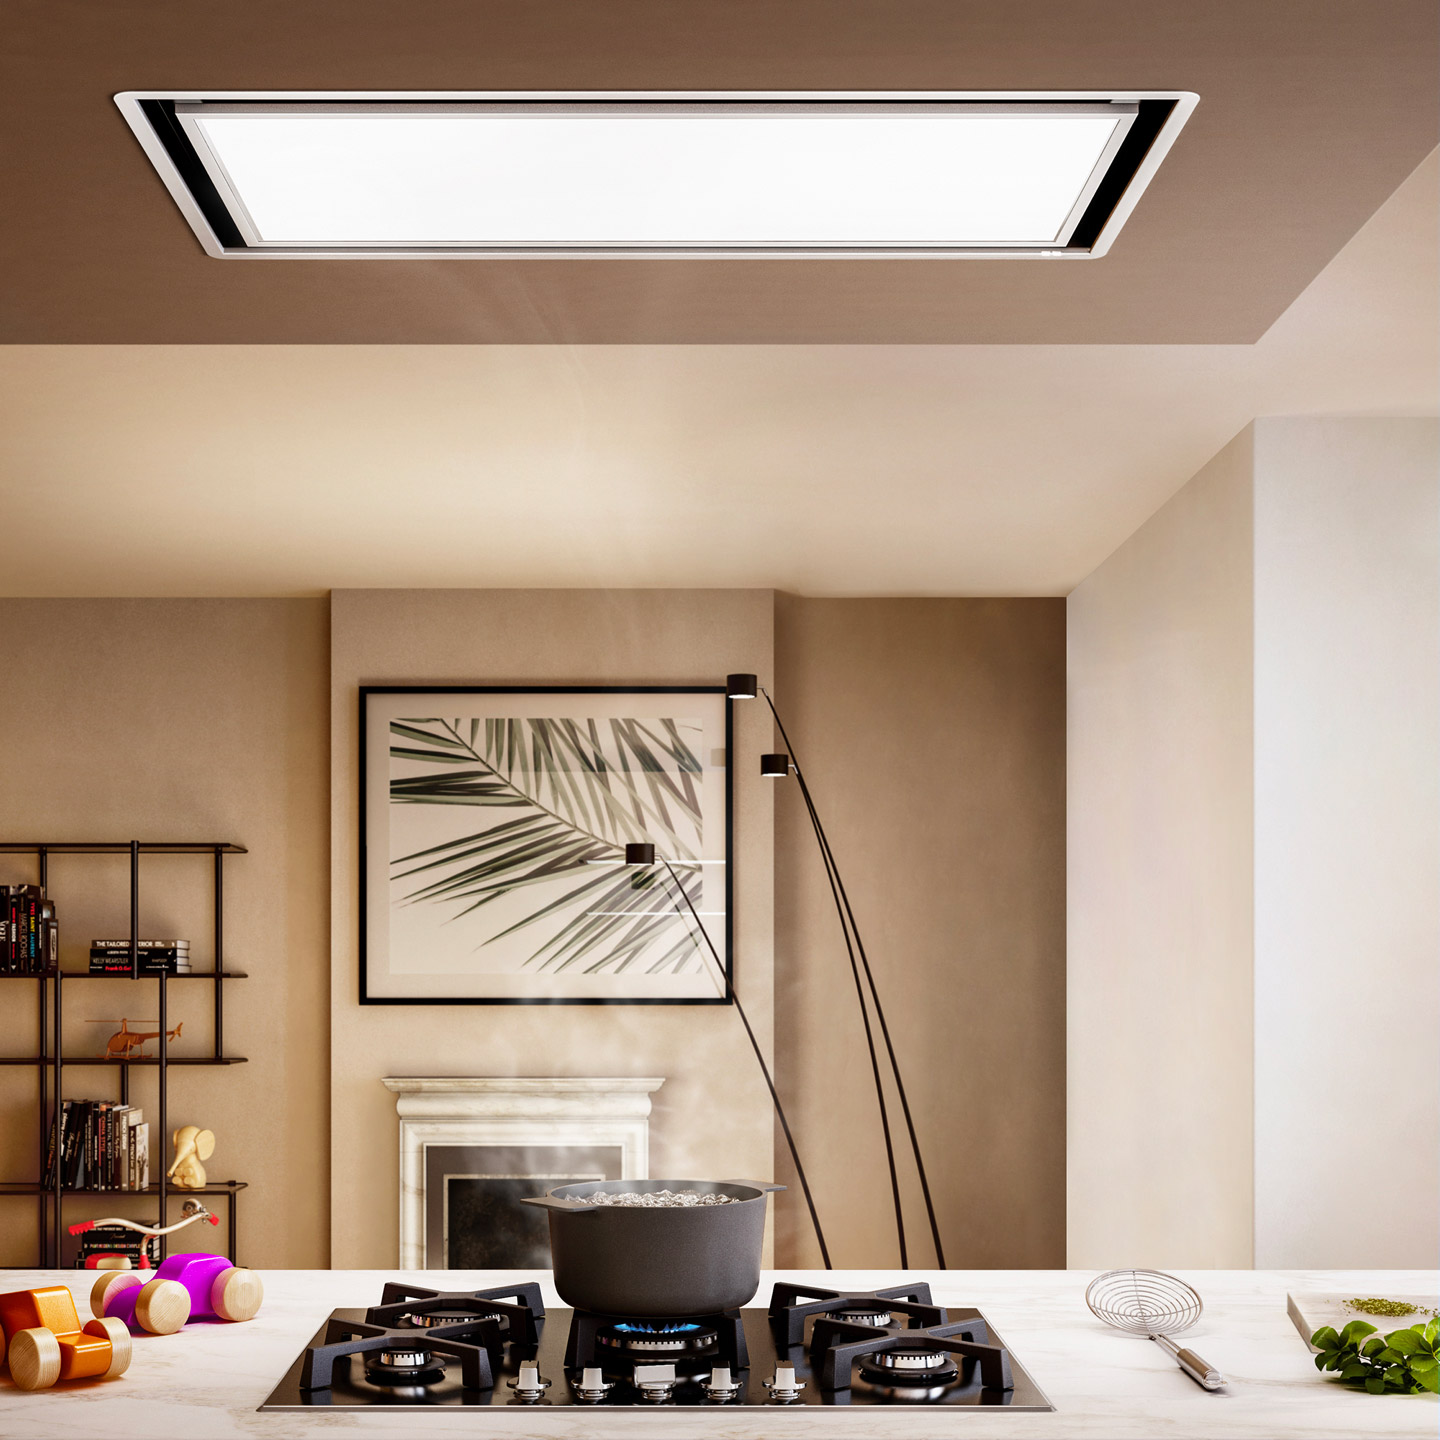 20 How to choose the best cooker hood for your kitchen   Elica